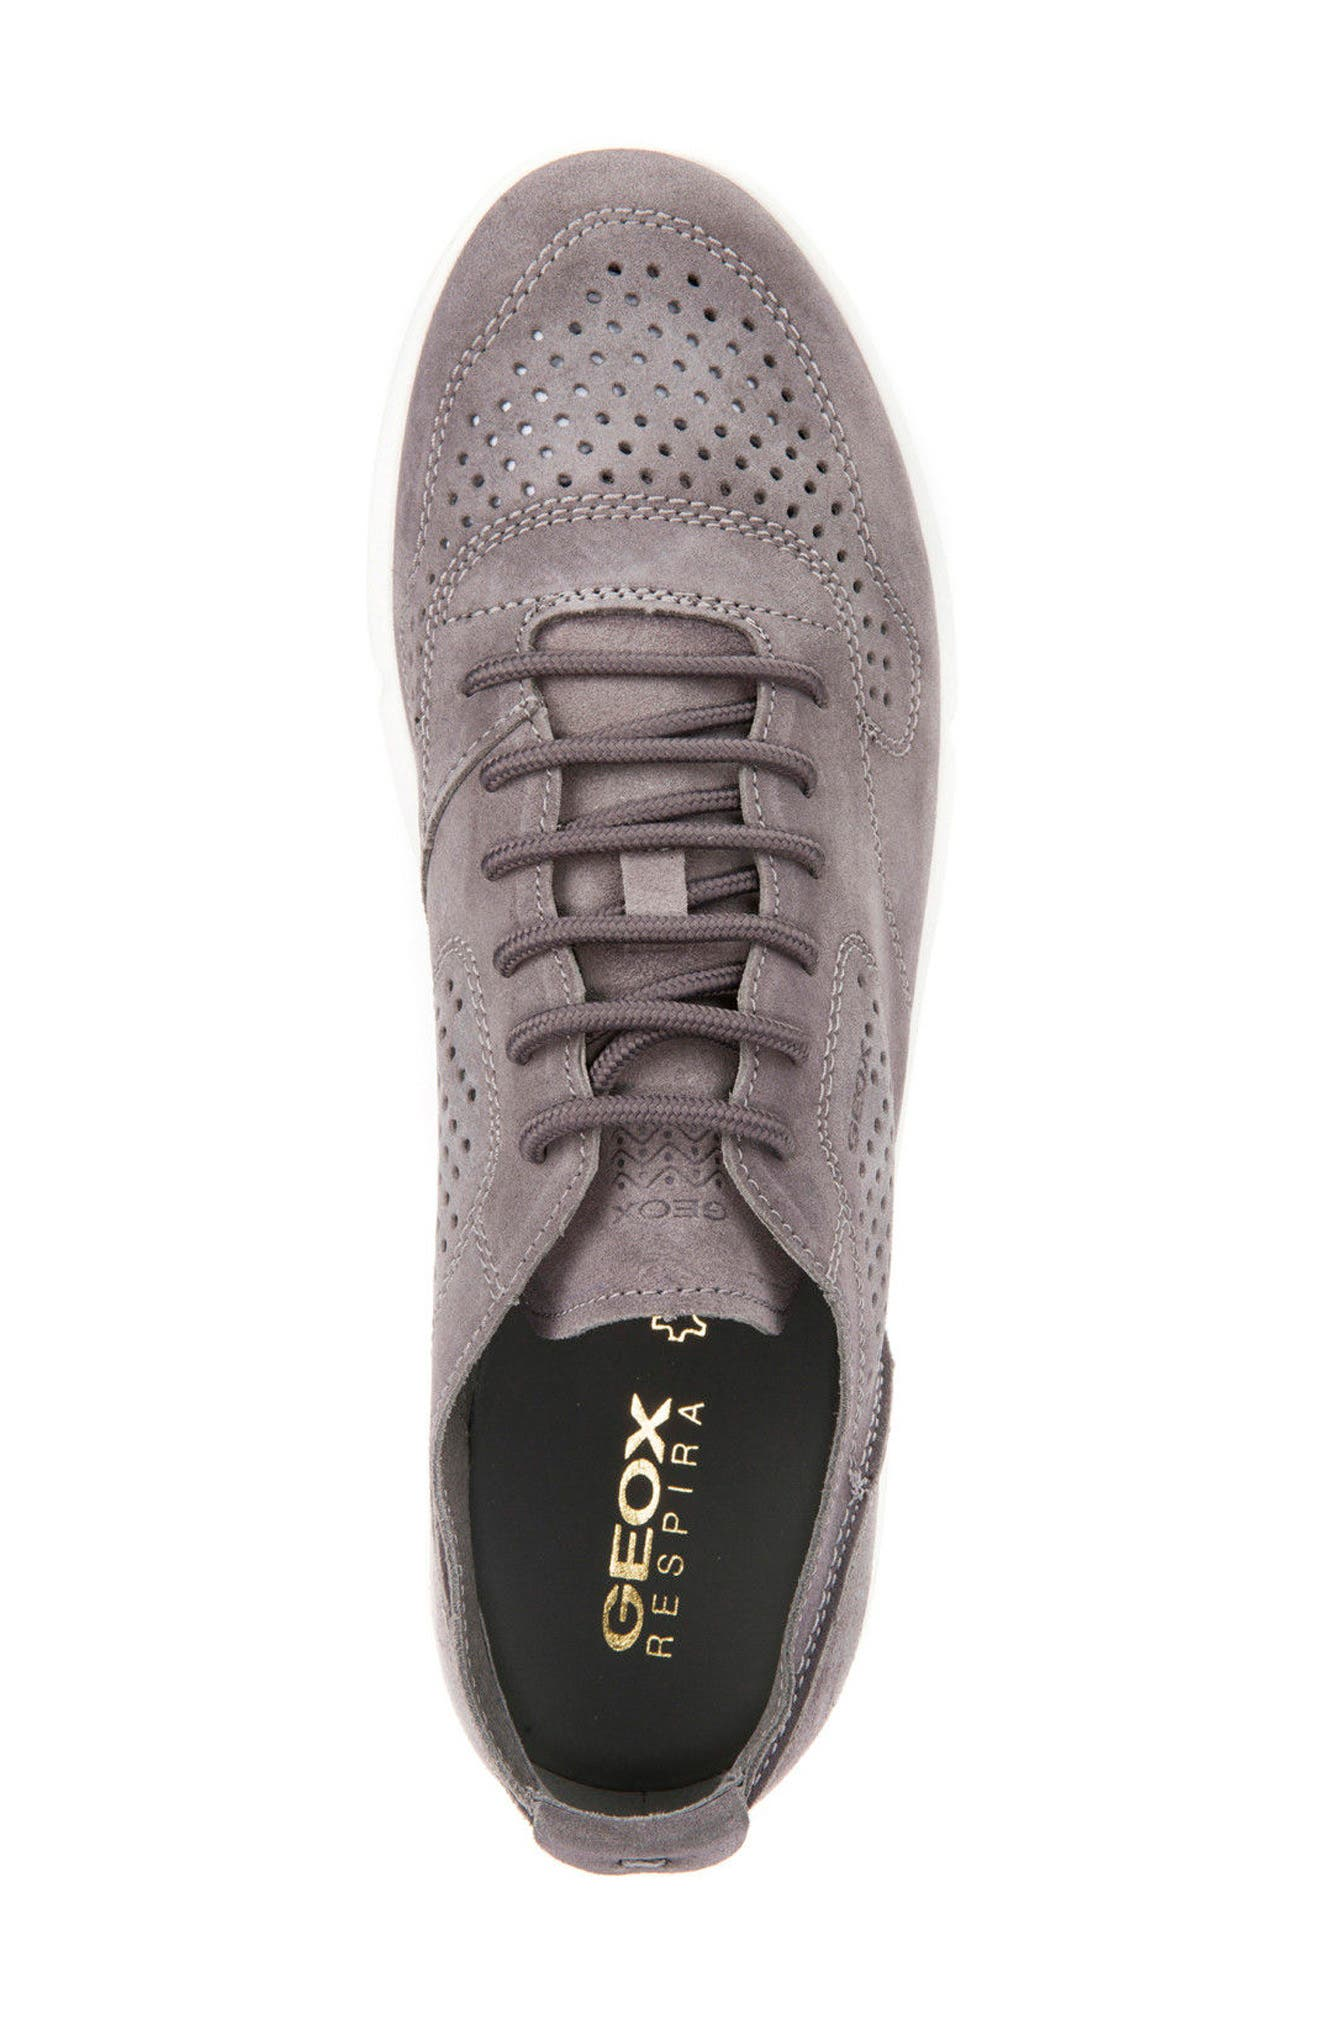 Brattley 2 Perforated Sneaker,                             Alternate thumbnail 5, color,                             020